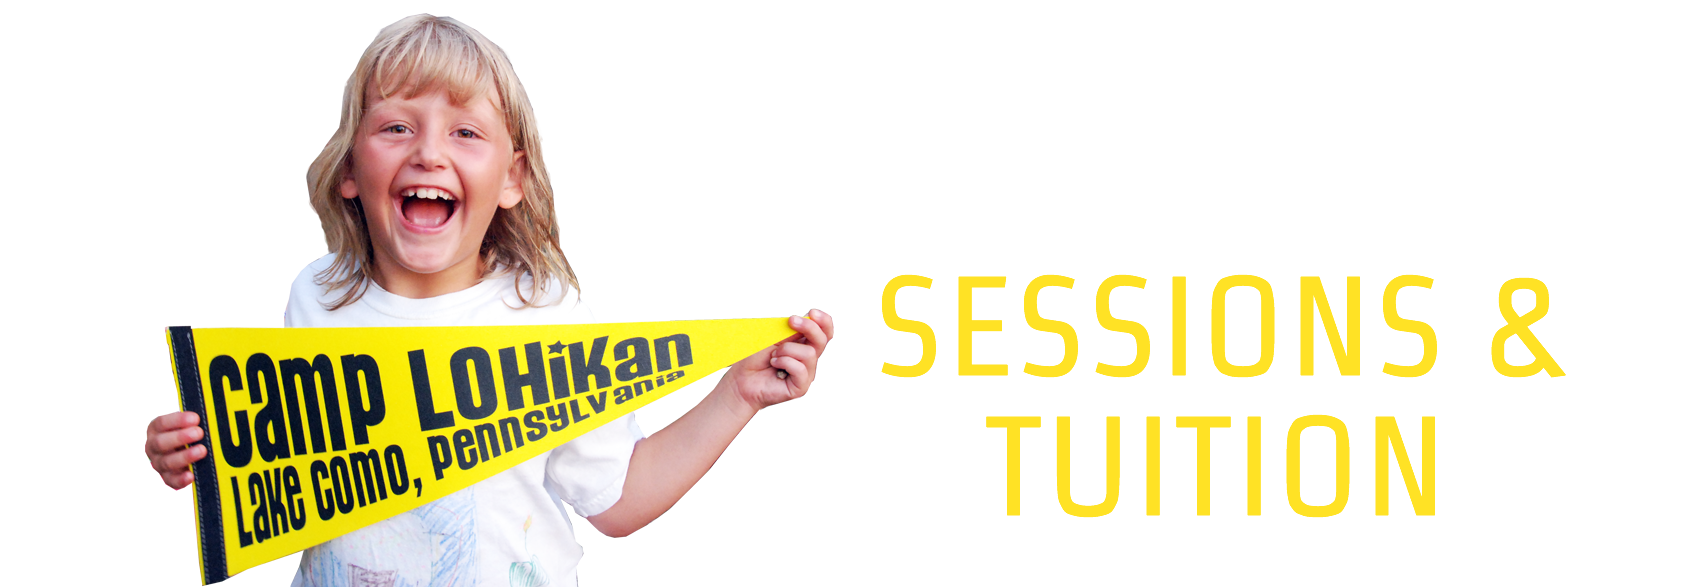 Camp Lohikan Sessions and Tuition